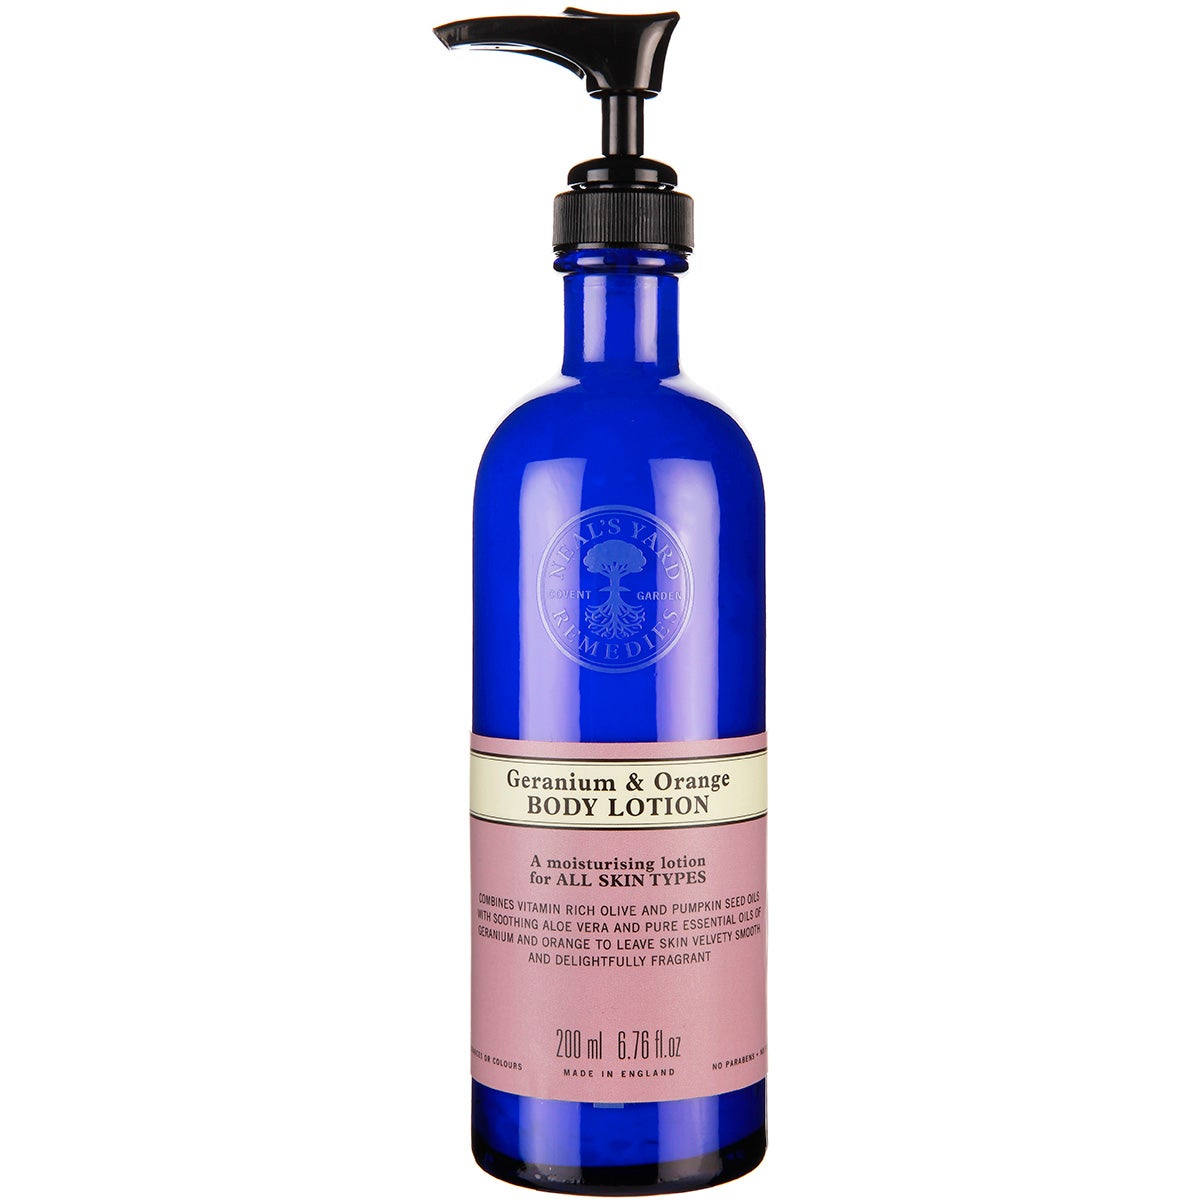 Neal's Yard Remedies Geranium & Orange Body Lotion